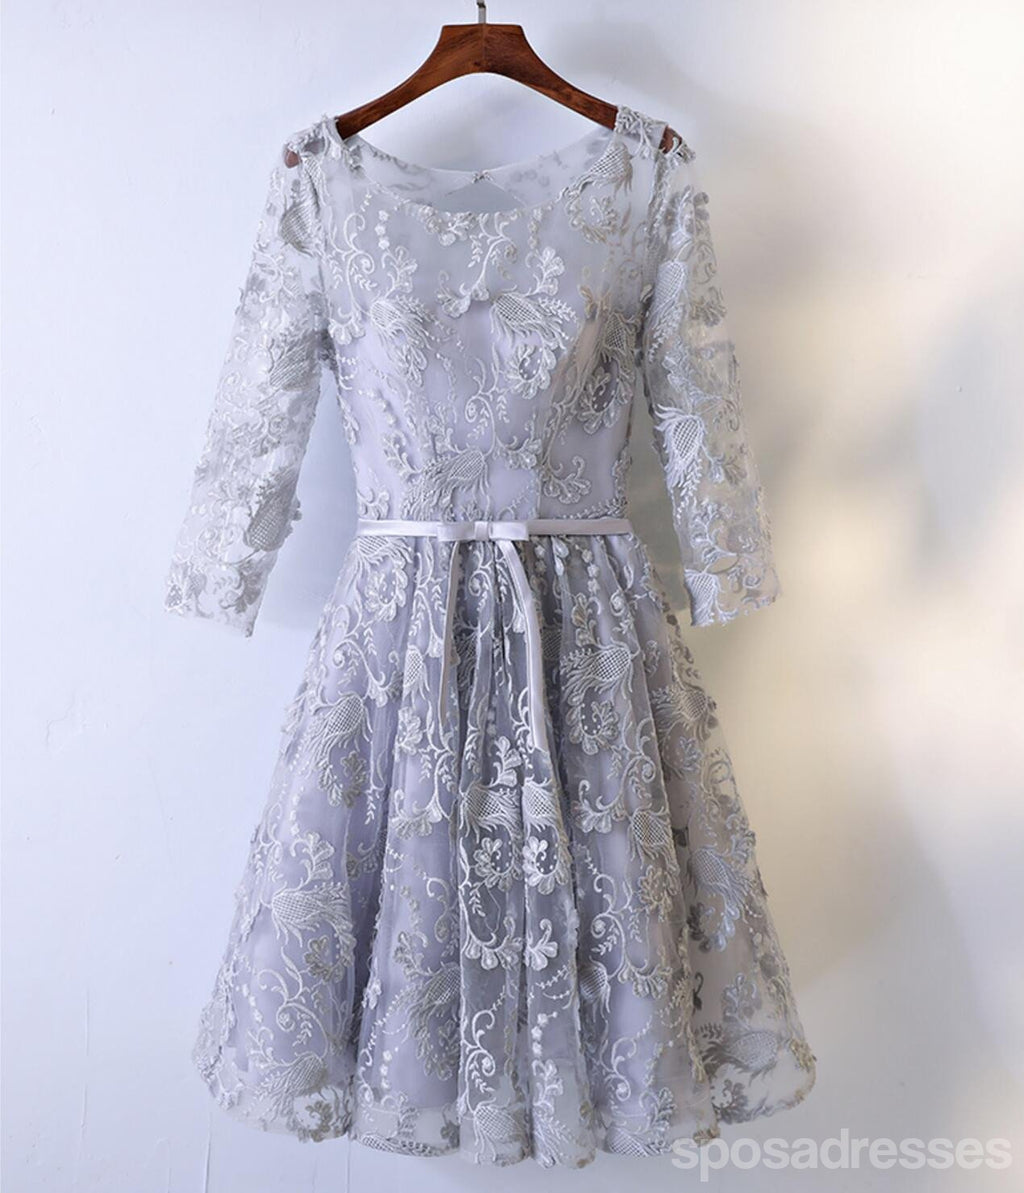 3ce7e5be6bf 2017 Long Sleeve Gray Lace Round Neckline Homecoming Prom Dresses ...